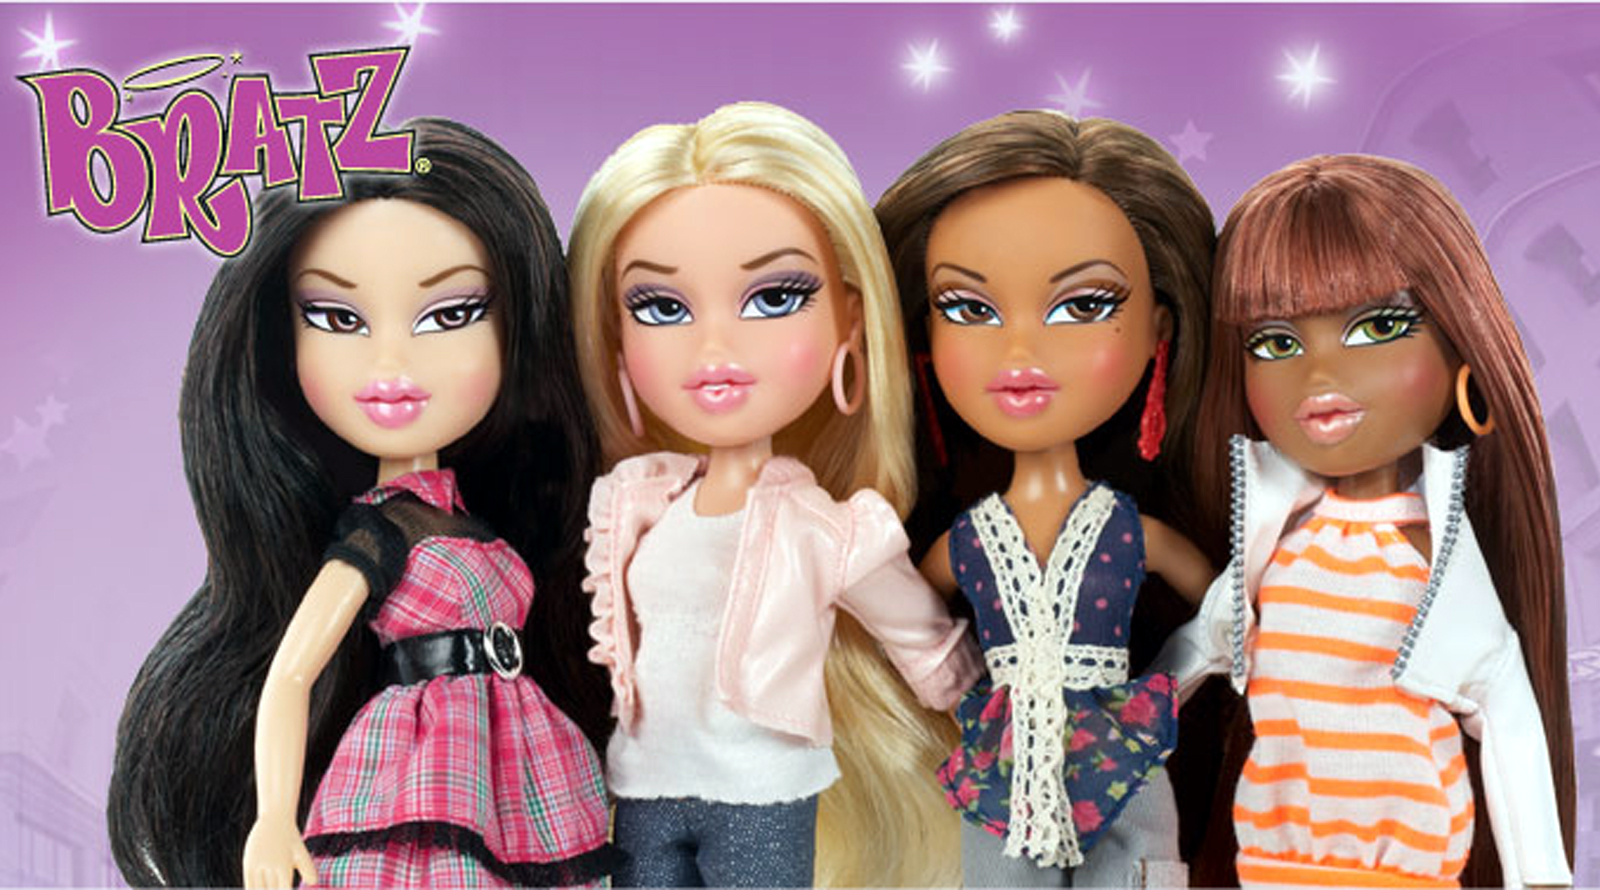 case 2 barbie vs bratz Isaac larian has refiled a lawsuit against mattel, saying the world's largest toymaker stole, lied and bullied in the fight over bratz.